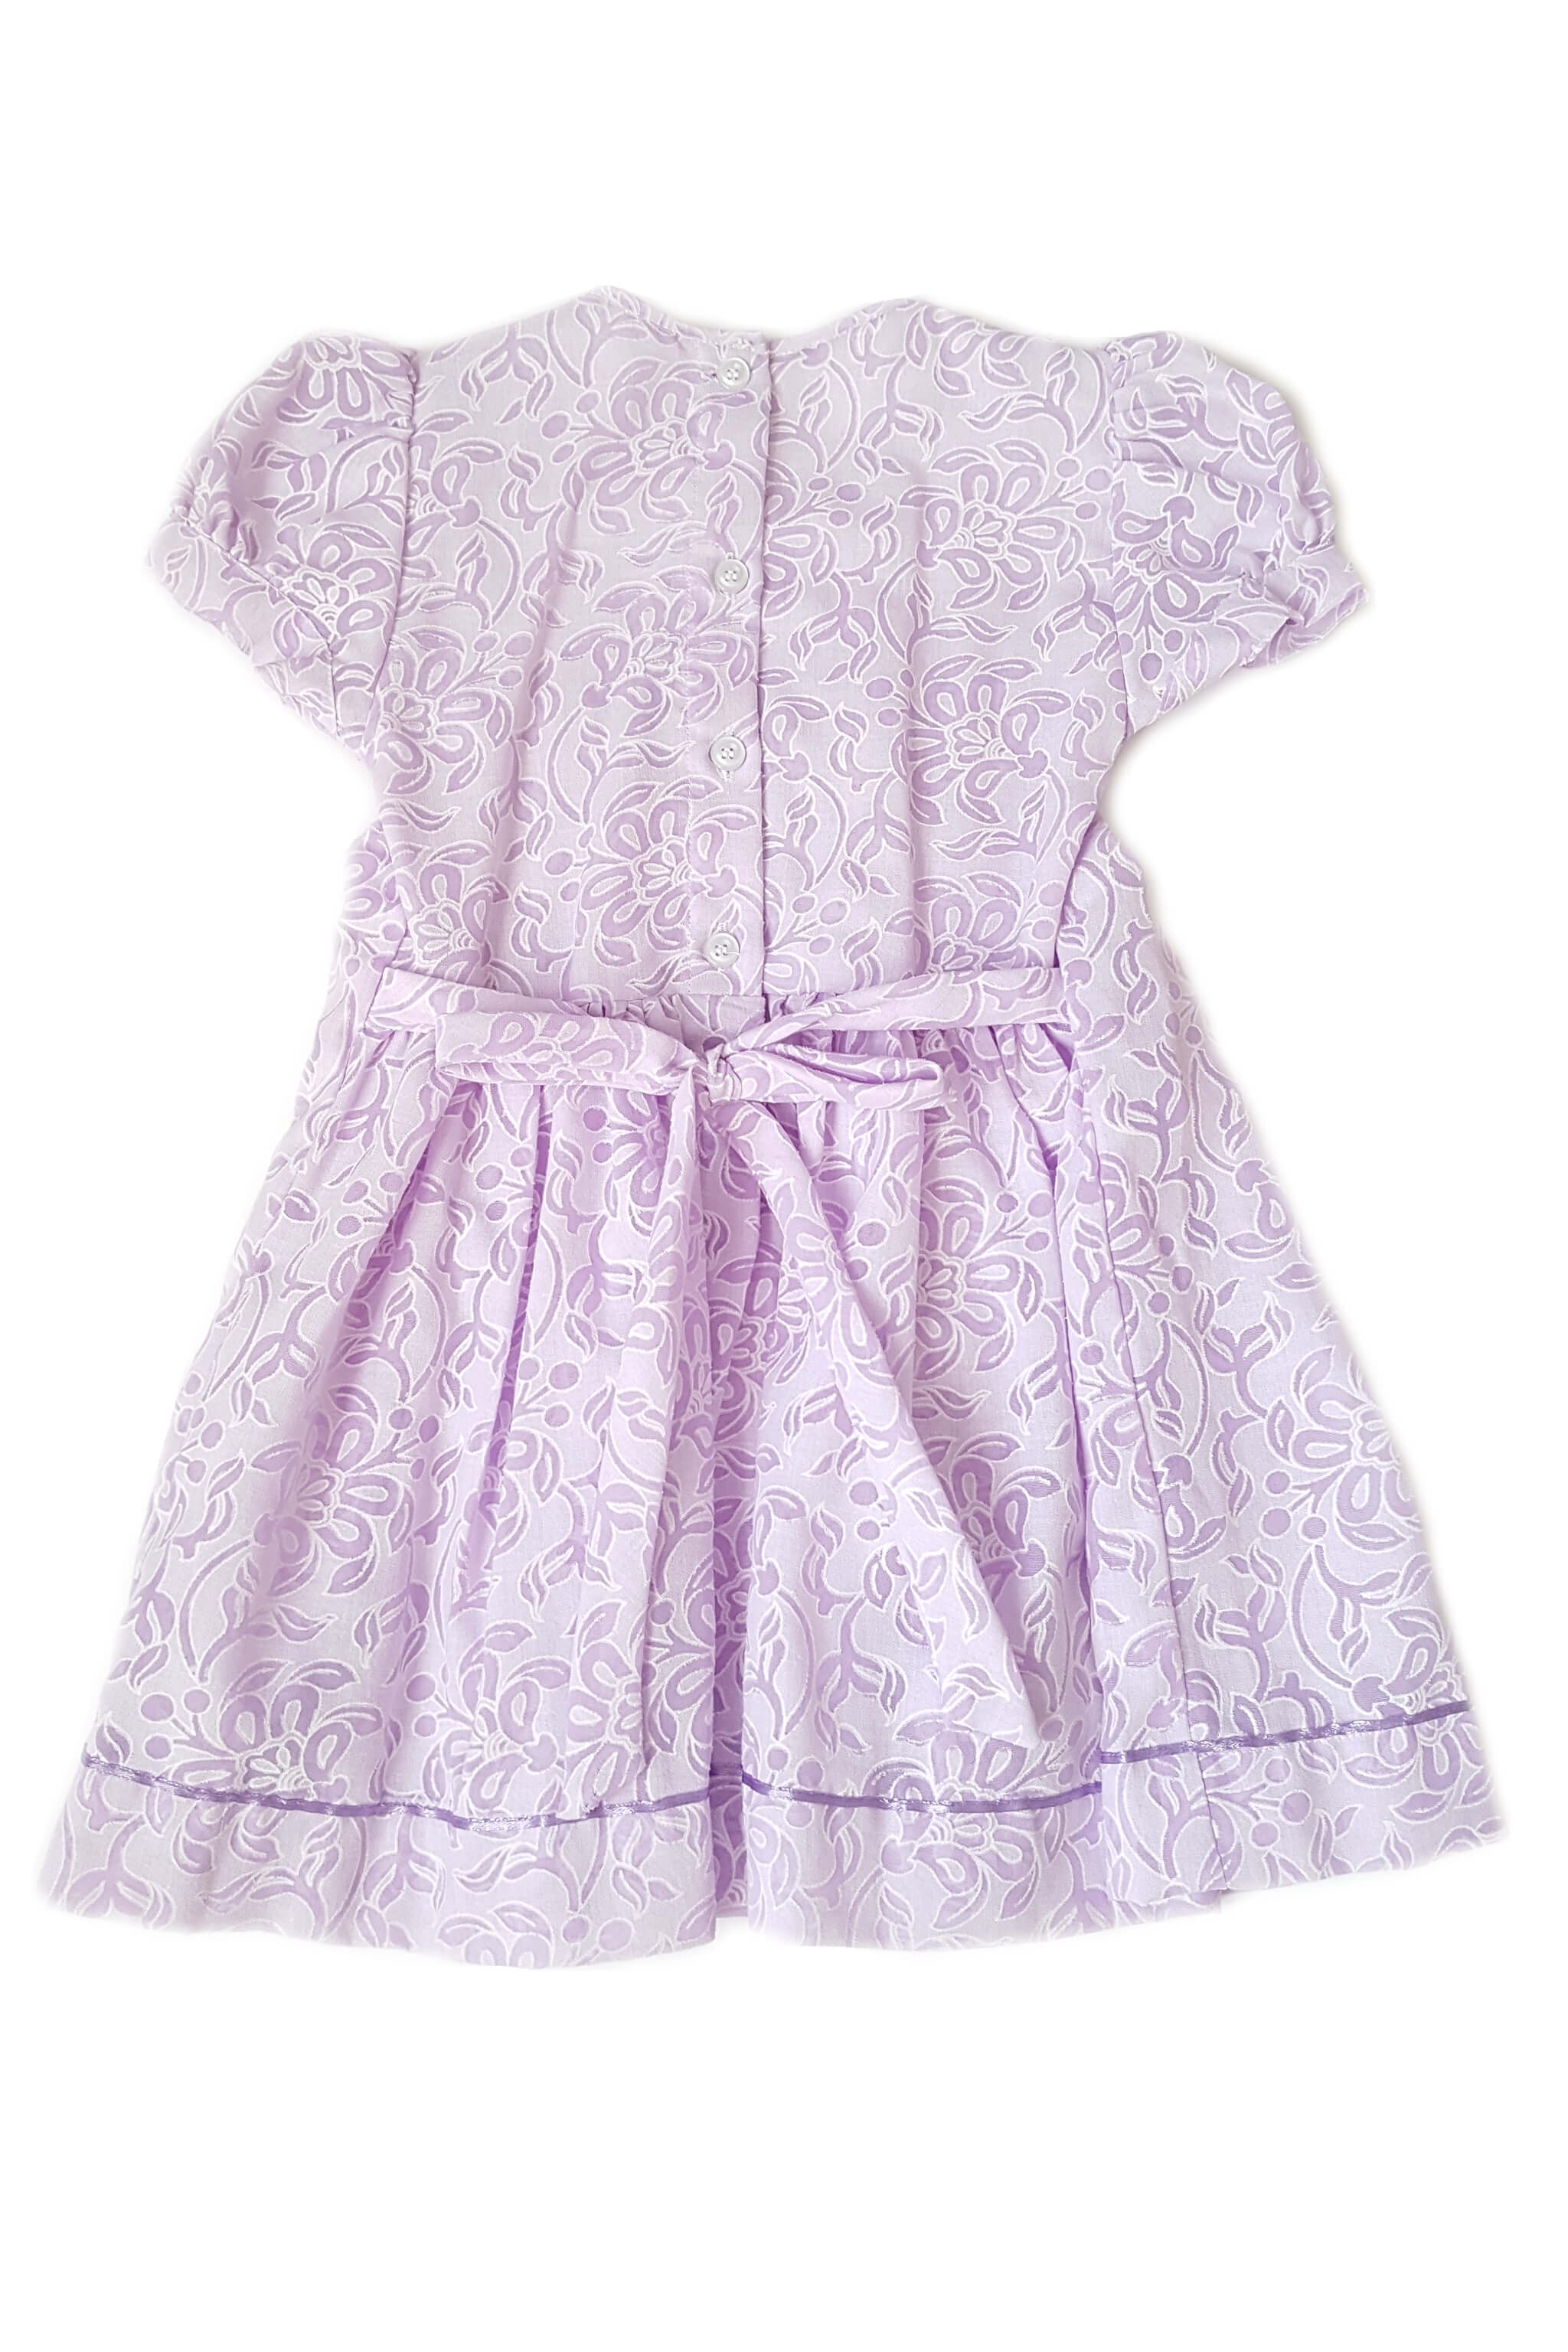 Back of lavender floral print dress with hand-smocked bodice and soft purple satin trim with button back and sash for girls